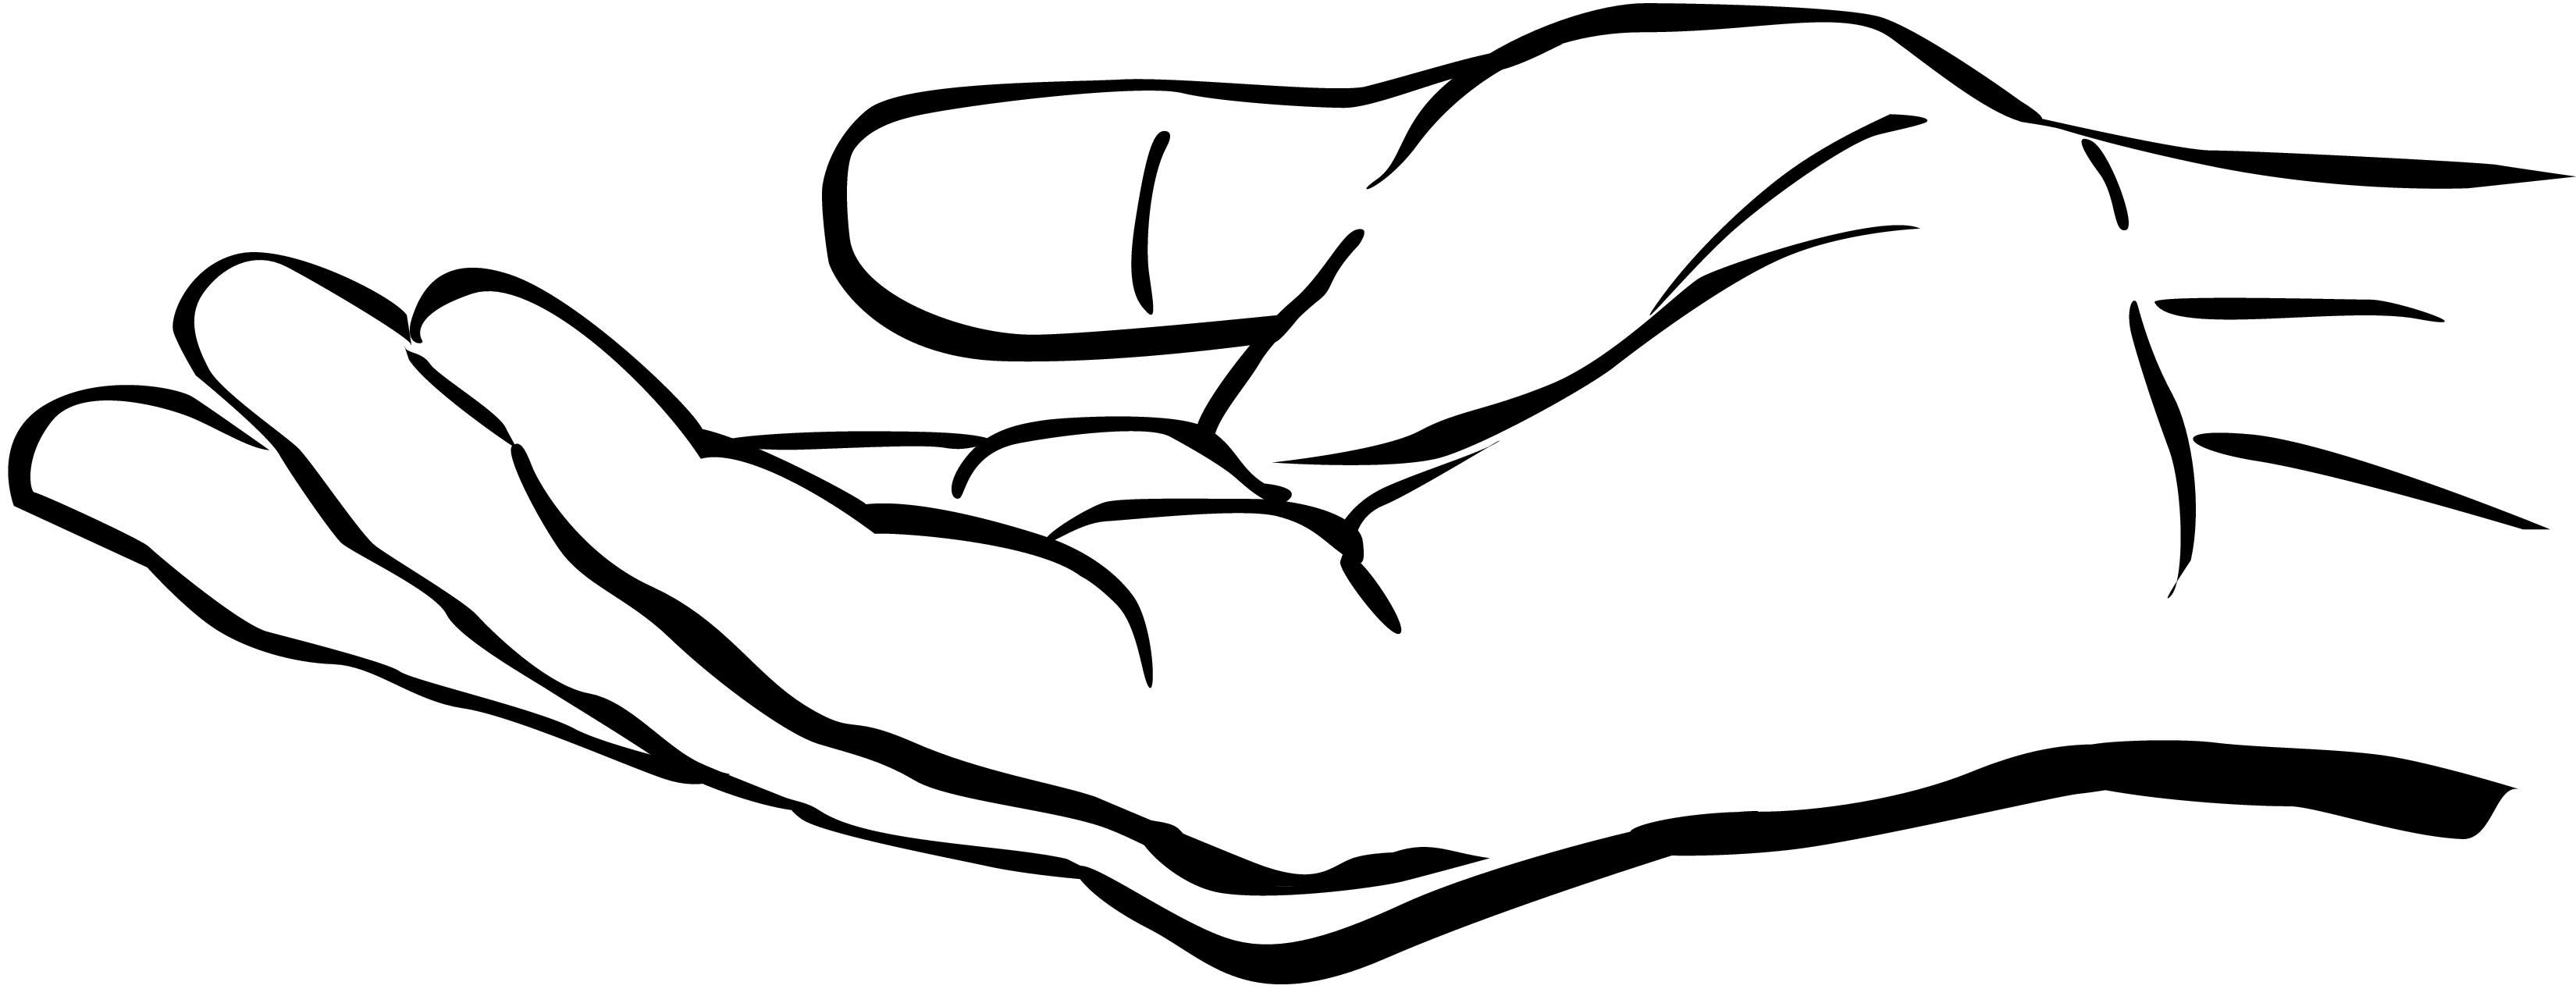 Whimsical open hands clipart png freeuse library Open Prayer Hands | Free download best Open Prayer Hands on ... png freeuse library